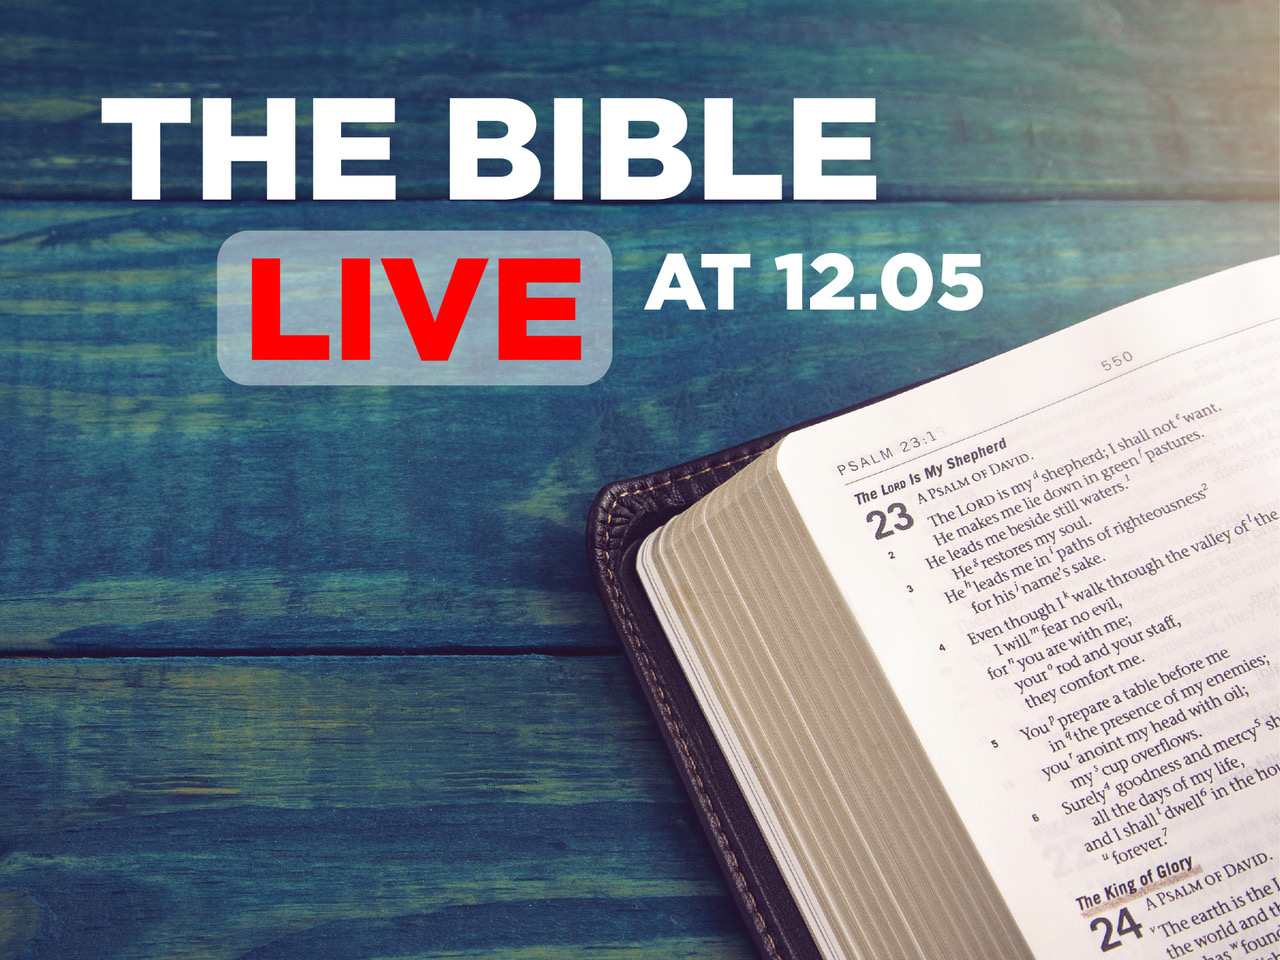 St Michael & All Angels, Westcliff-on-Sea: The Bible Live at 12.05